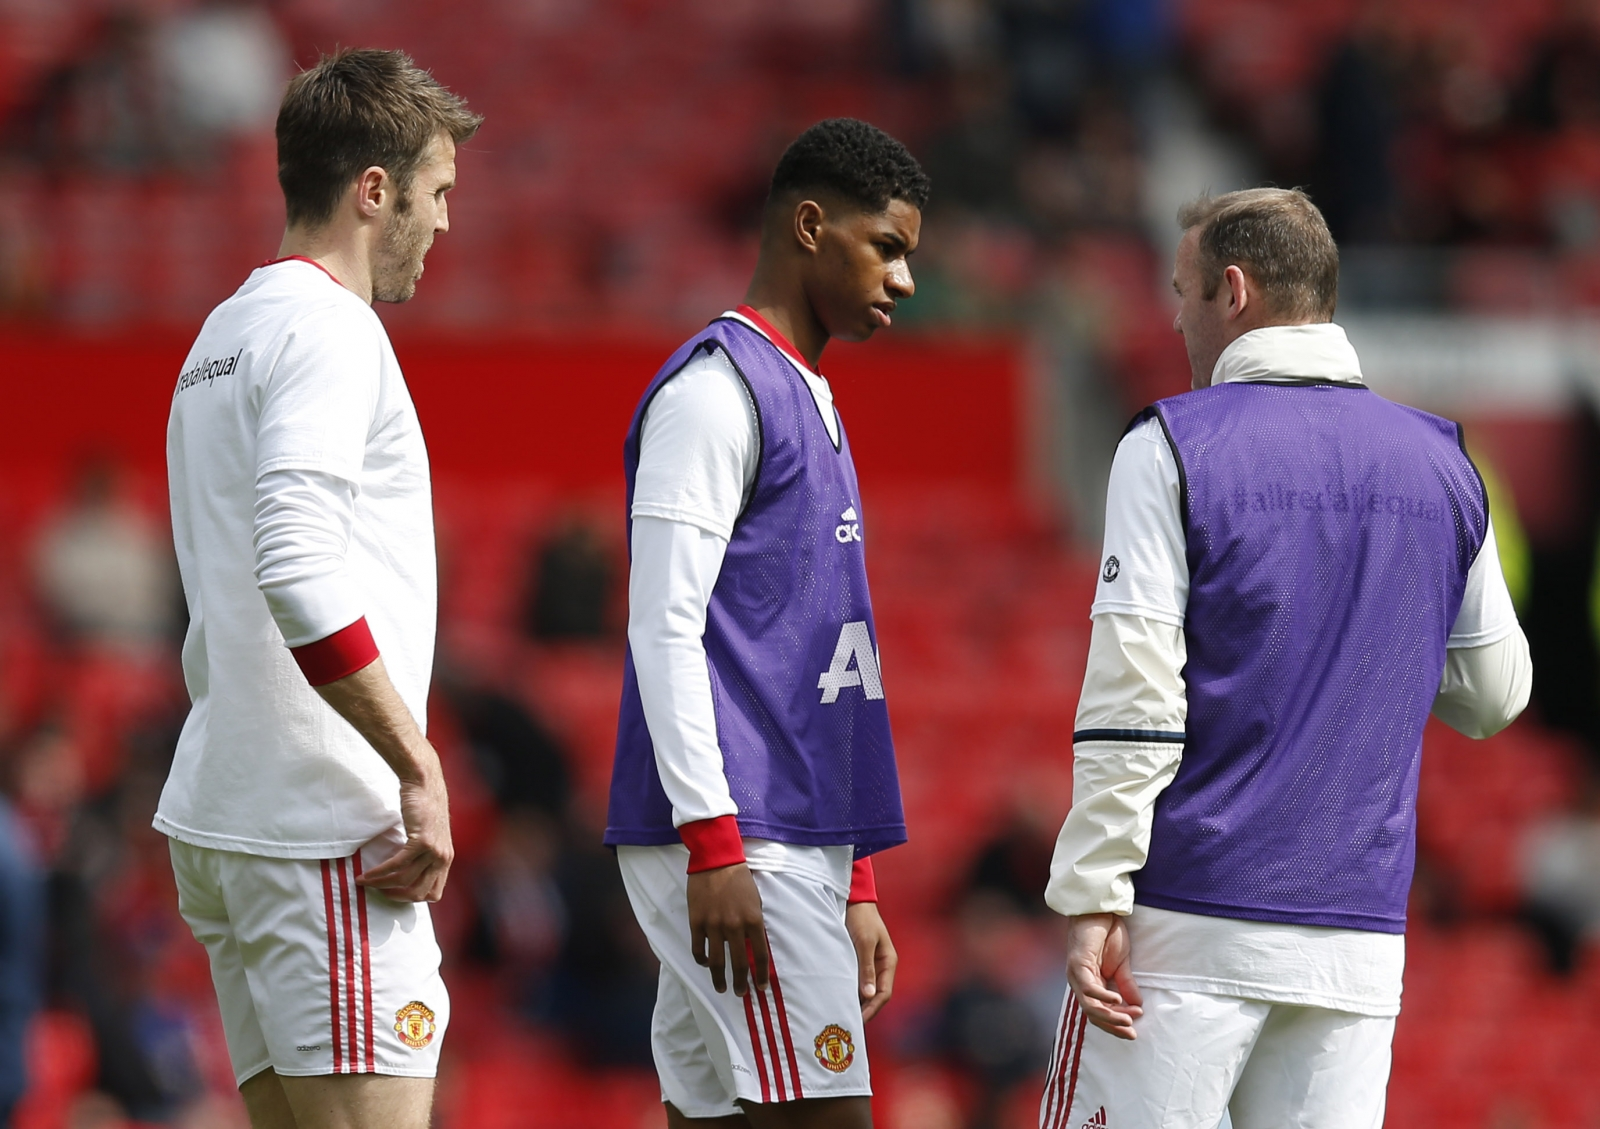 Michael Carrick, Marcus Rashford and Wayne Rooney